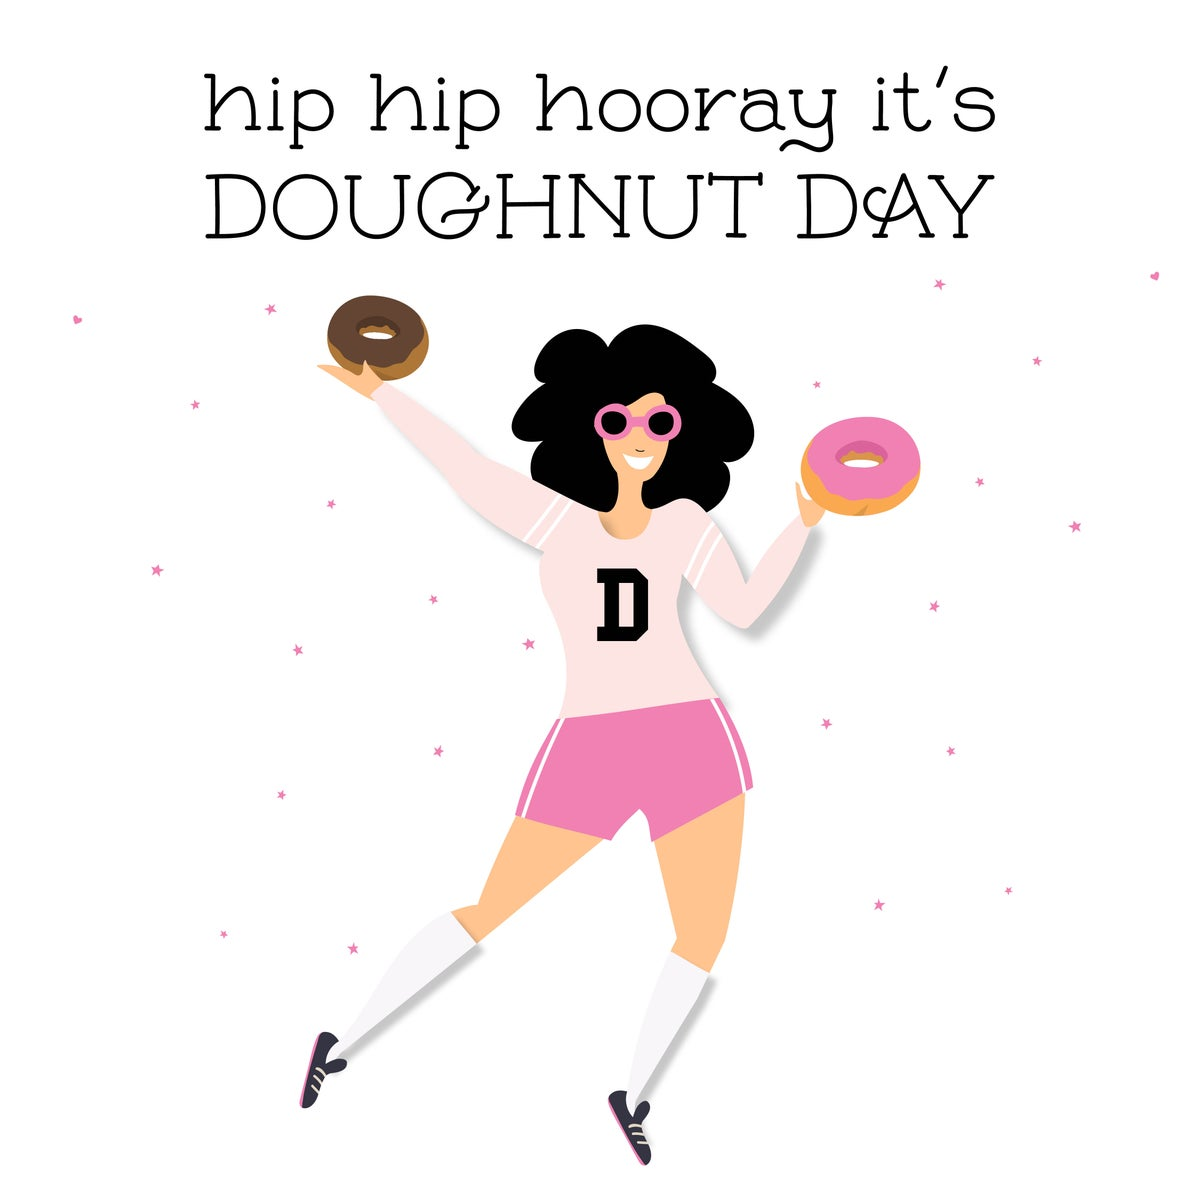 It's Doughnut Day Note Card